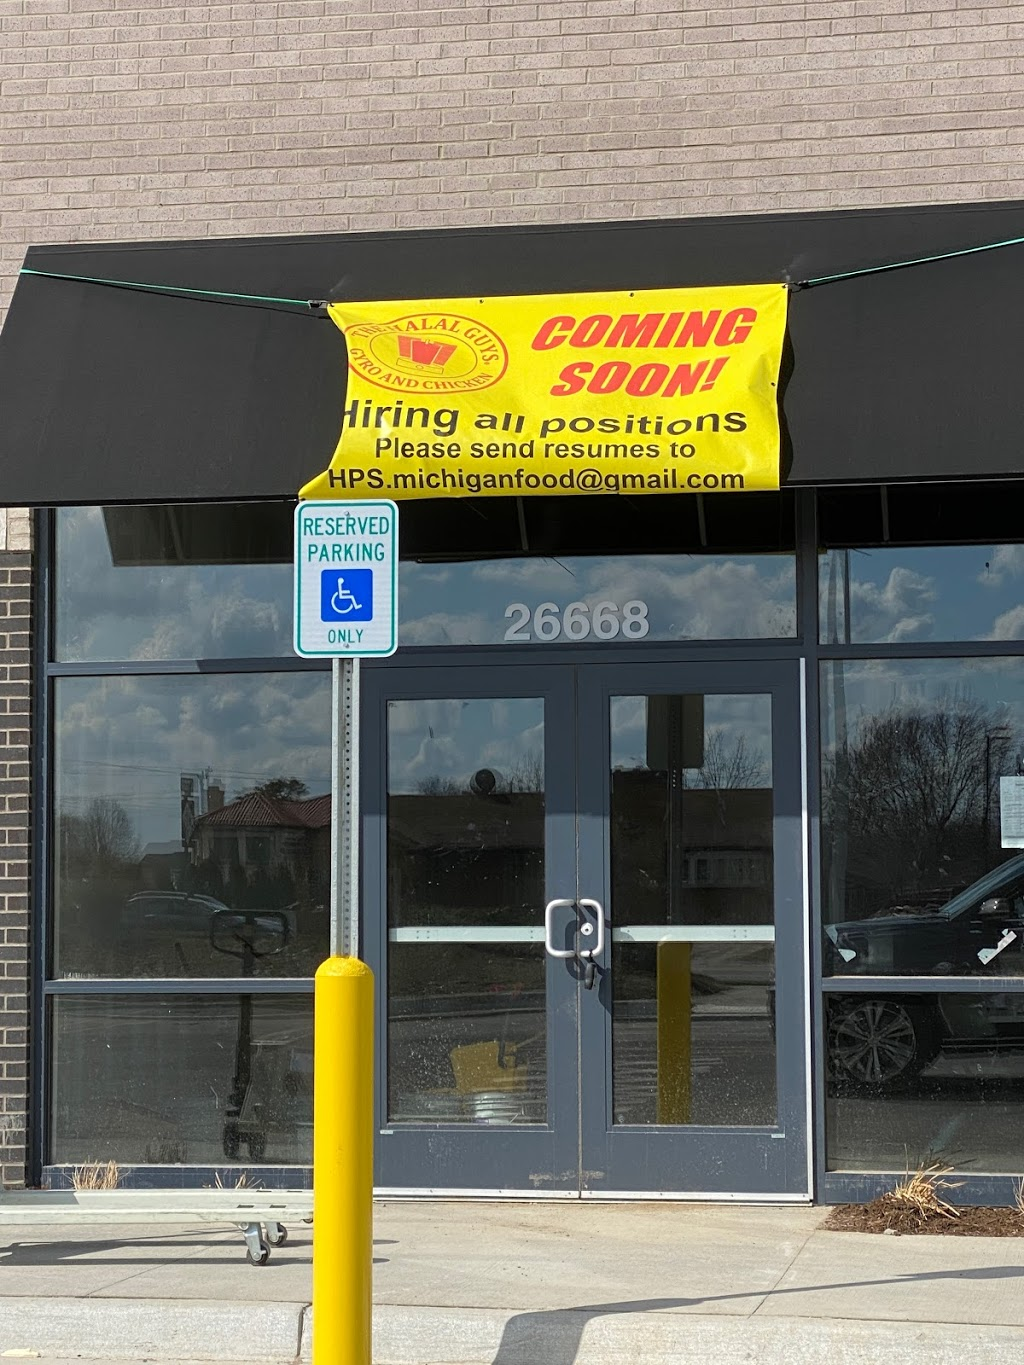 The Halal Guys Gyro and Chicken   restaurant   26668 Ford Rd, Dearborn Heights, MI 48127, USA